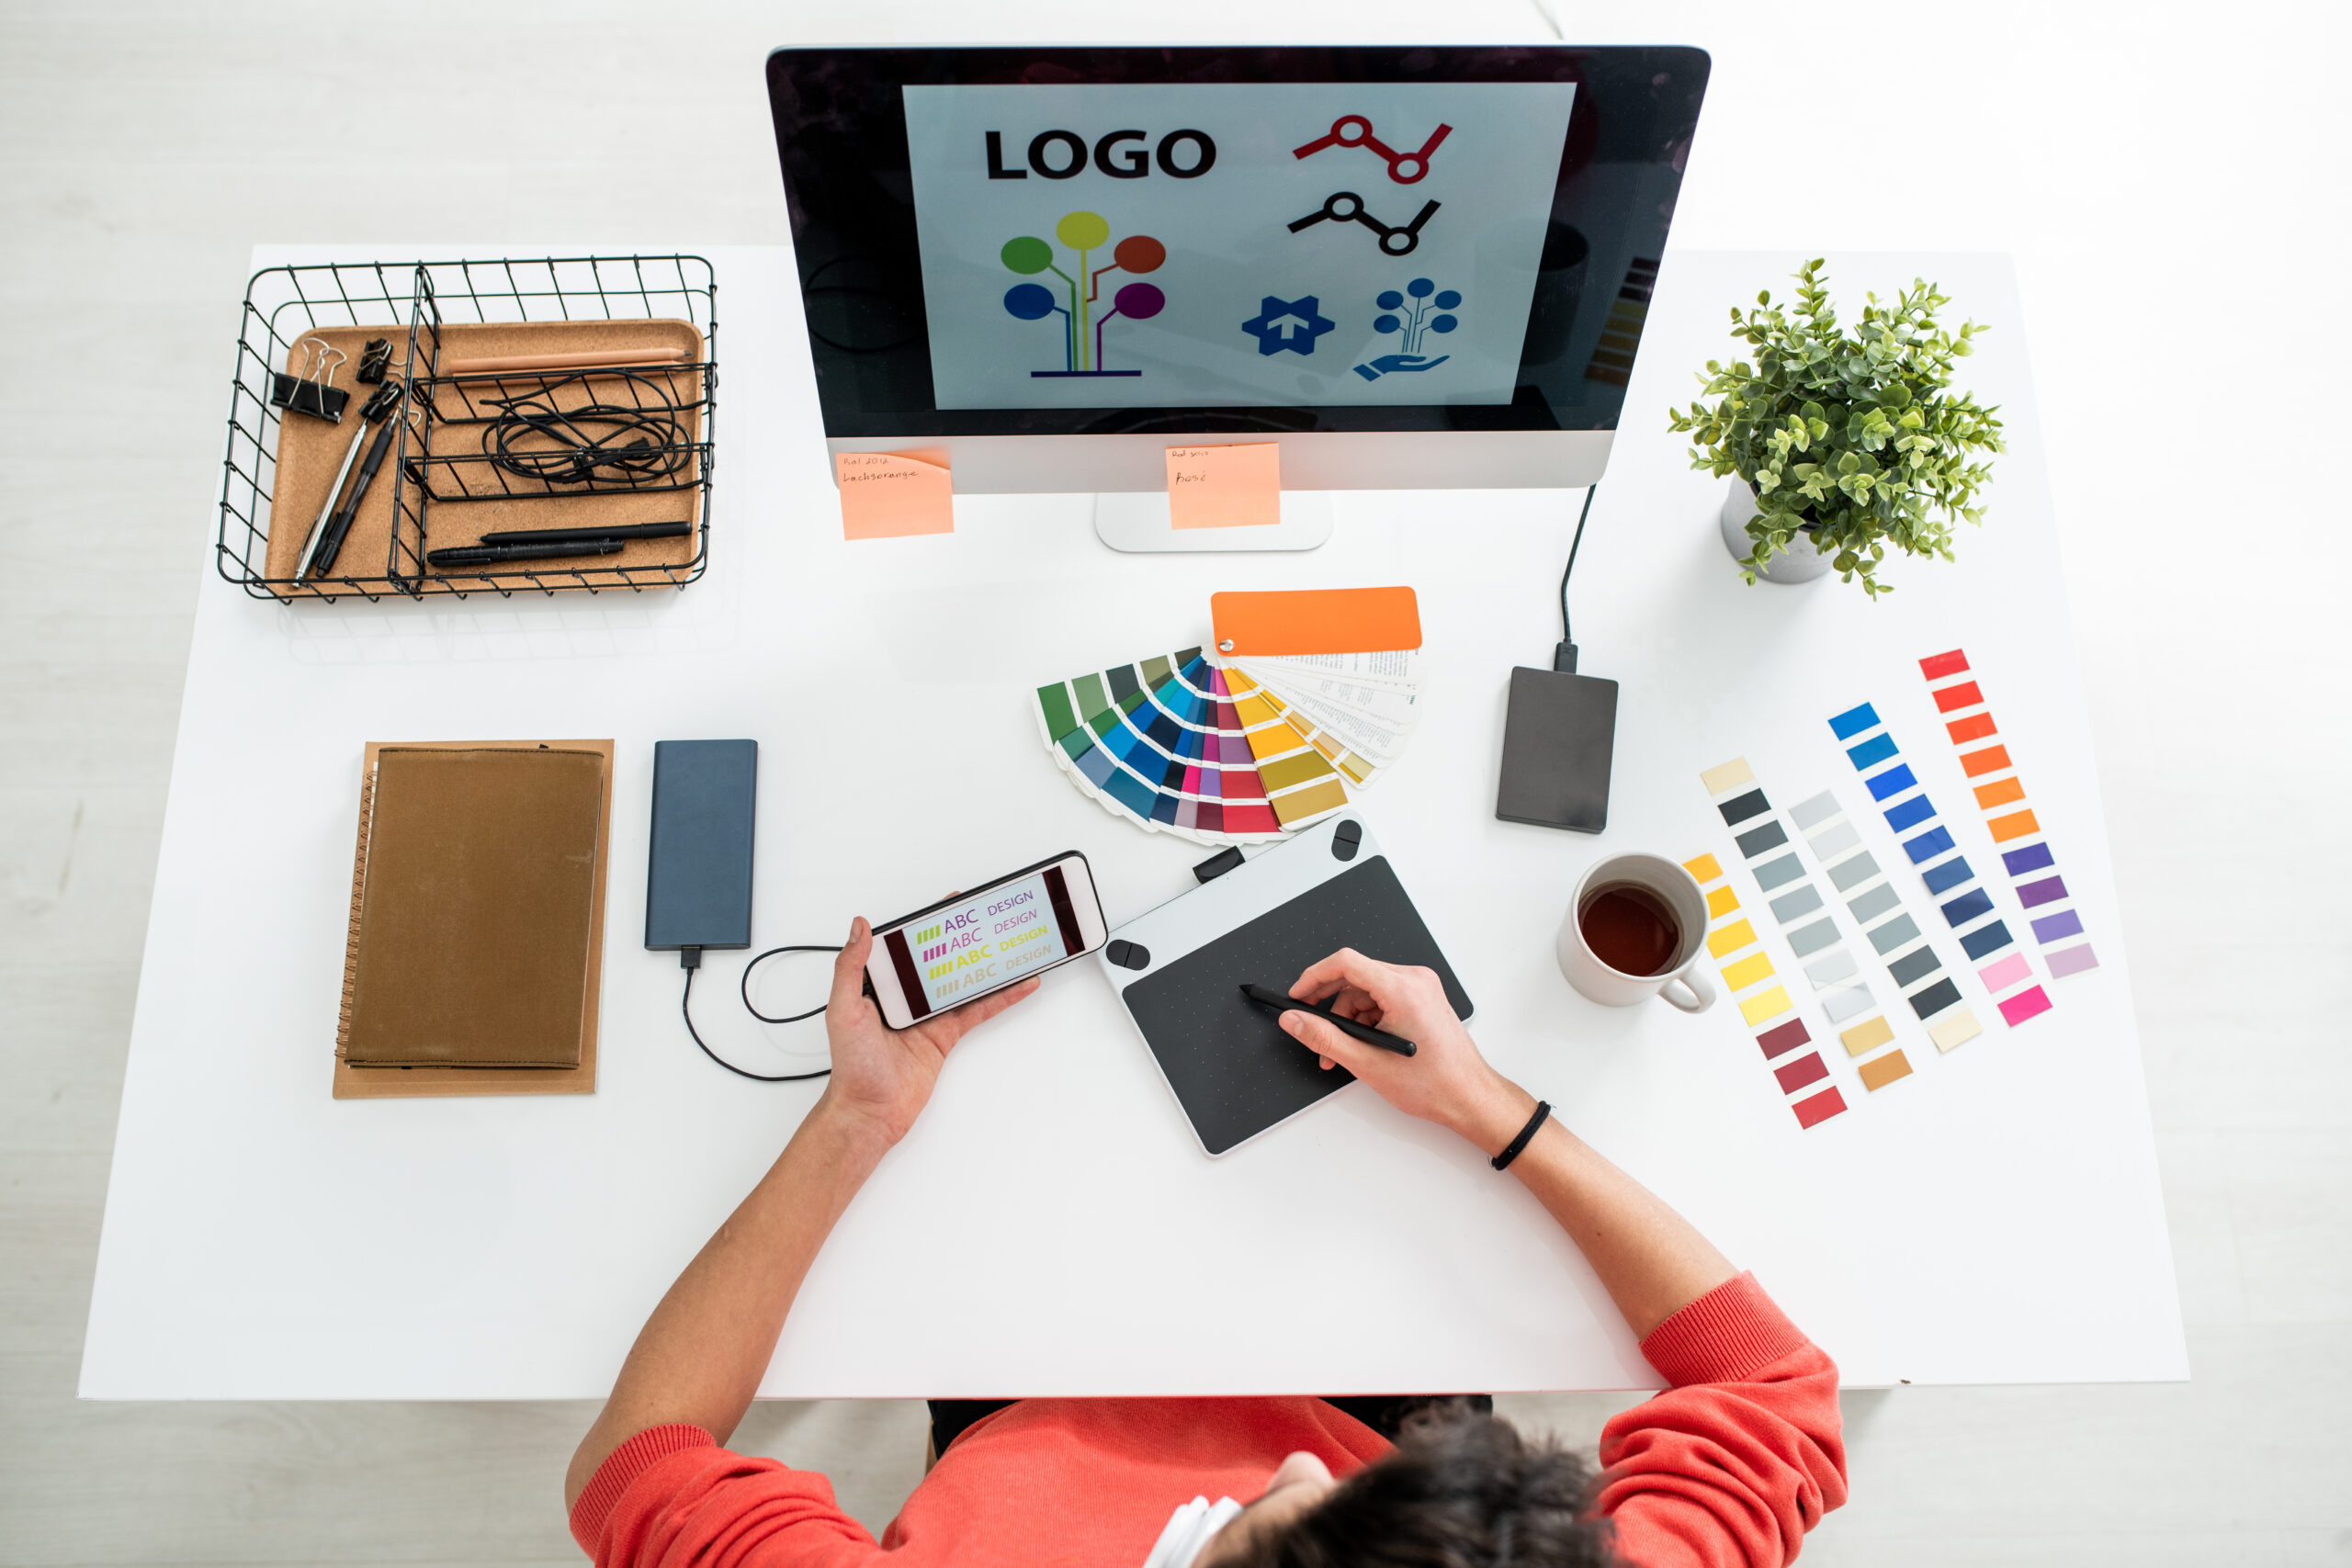 Flat layout of young web designer with stylus and graphics tablet choosing printing type for logo on computer screen